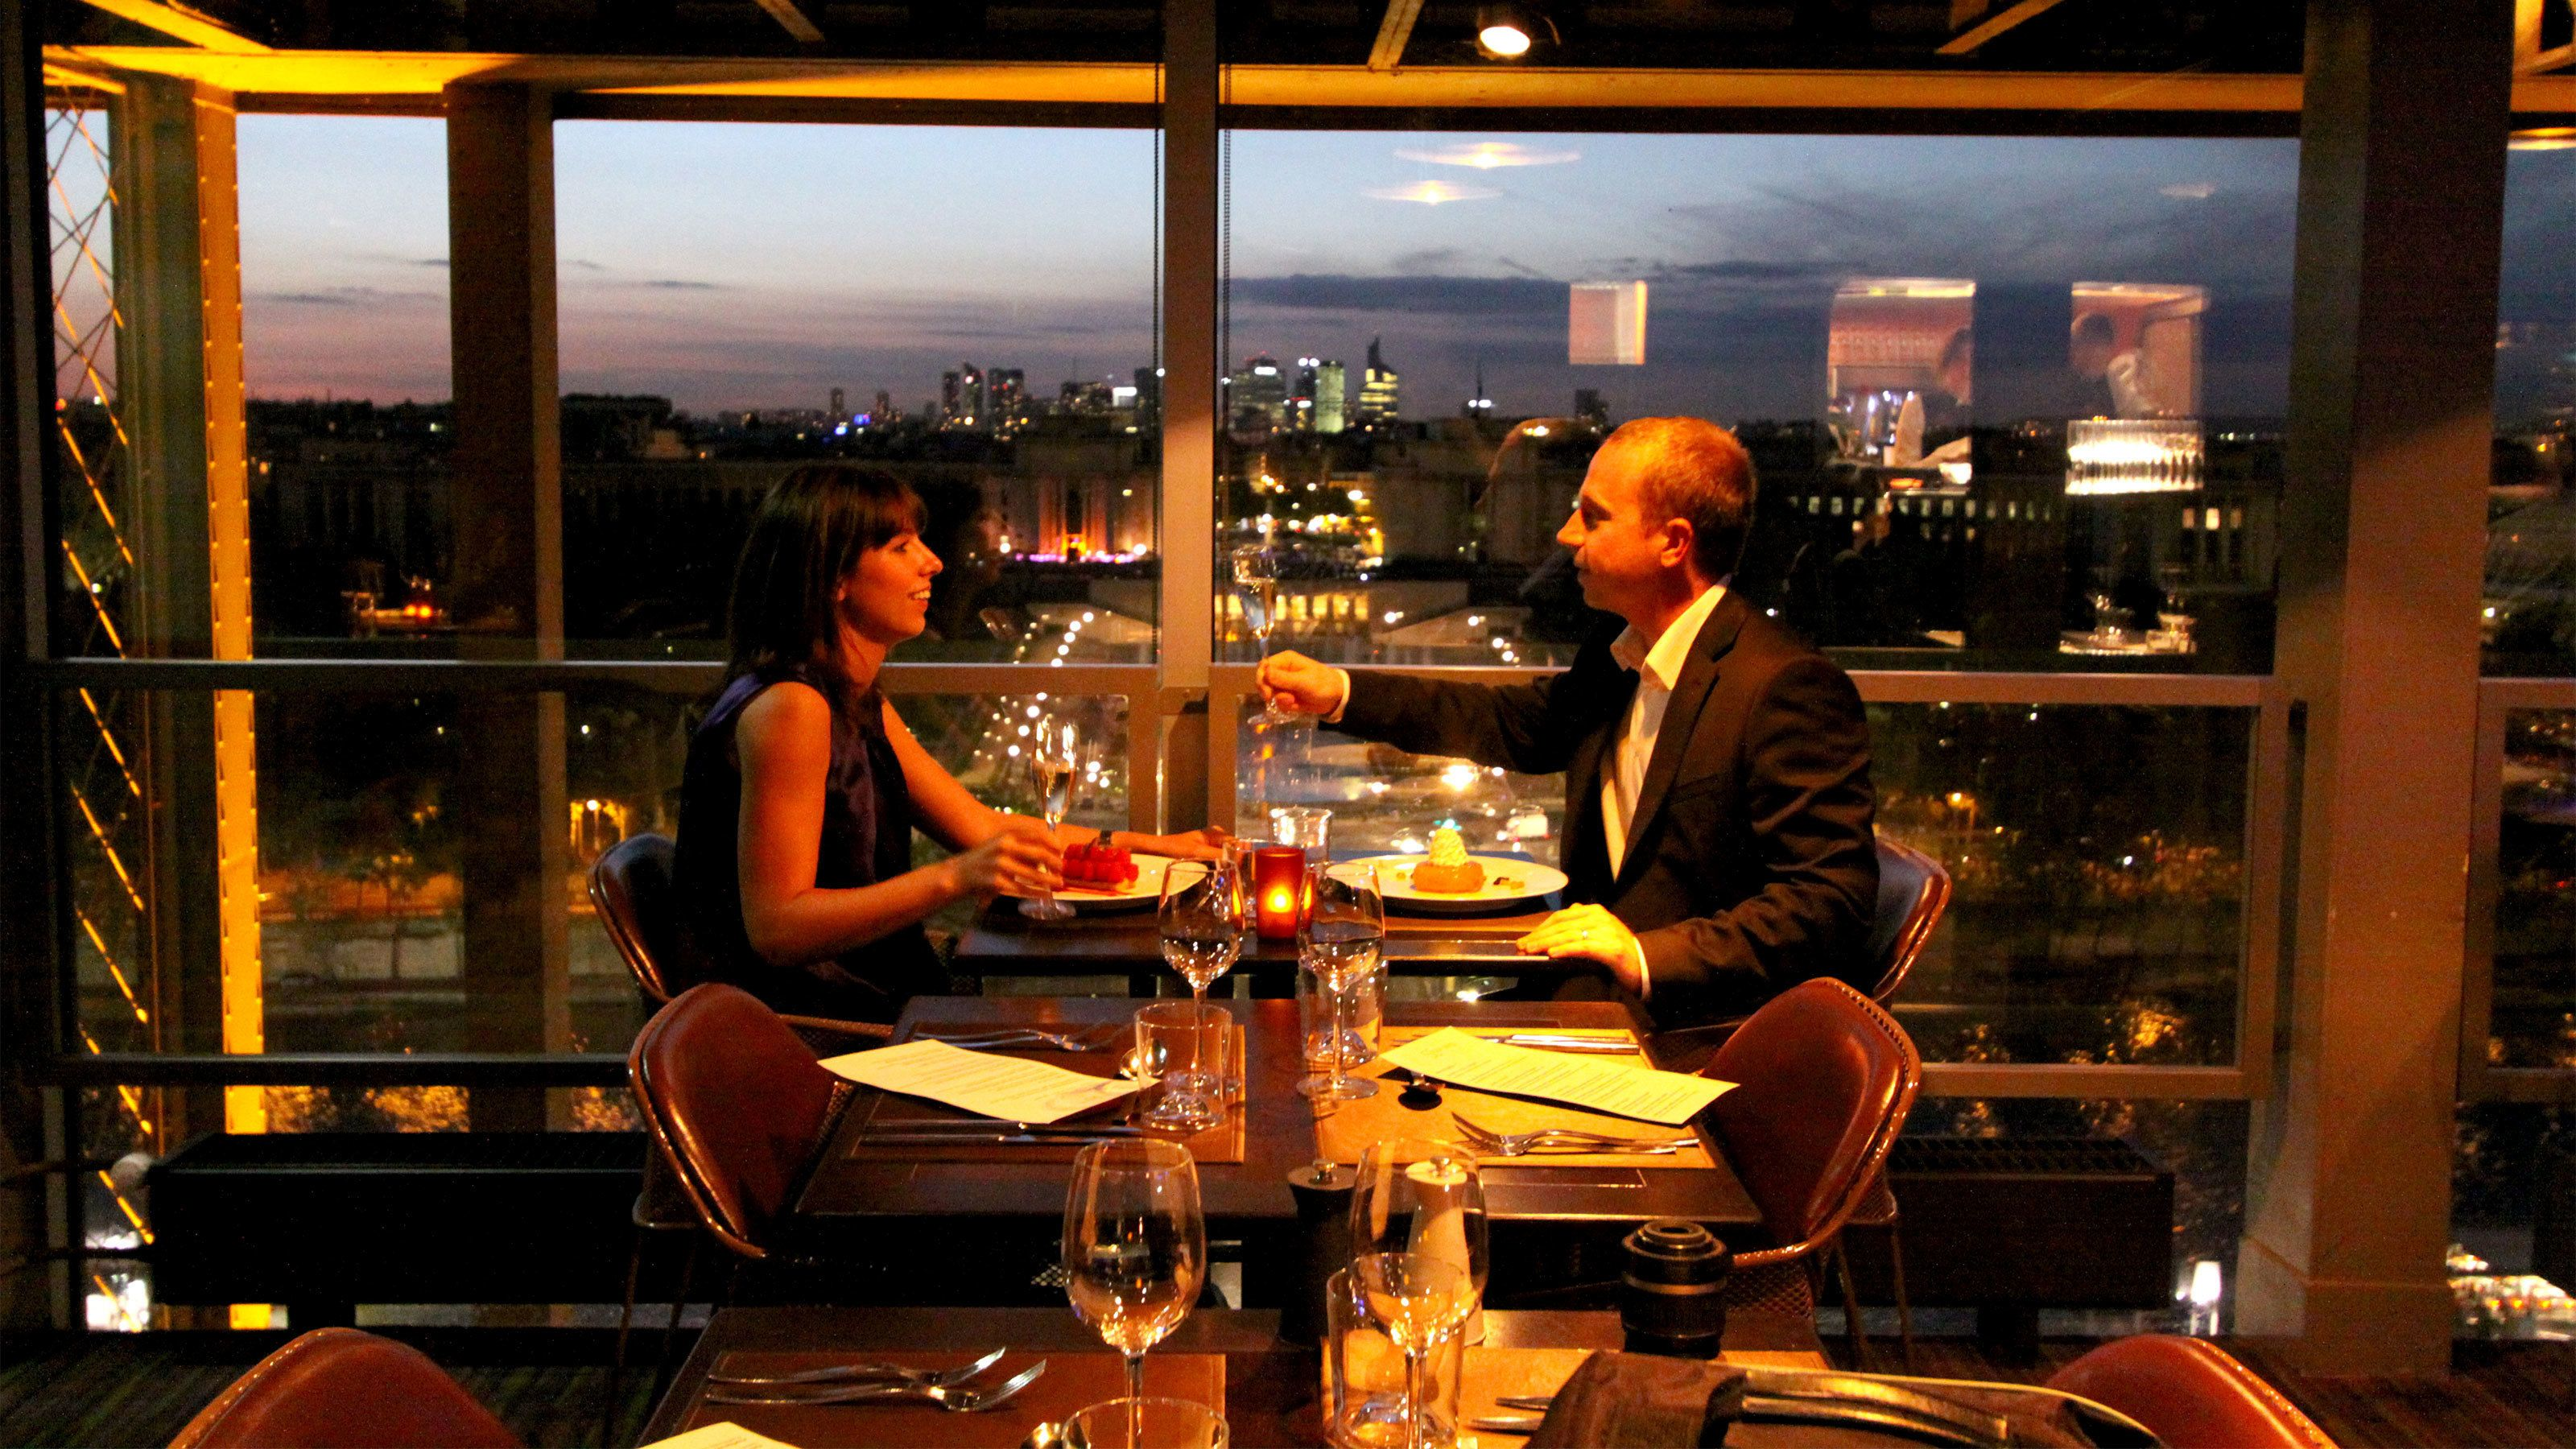 Eiffel Tower Dinner, River Seine Cruise & Moulin Rouge Show